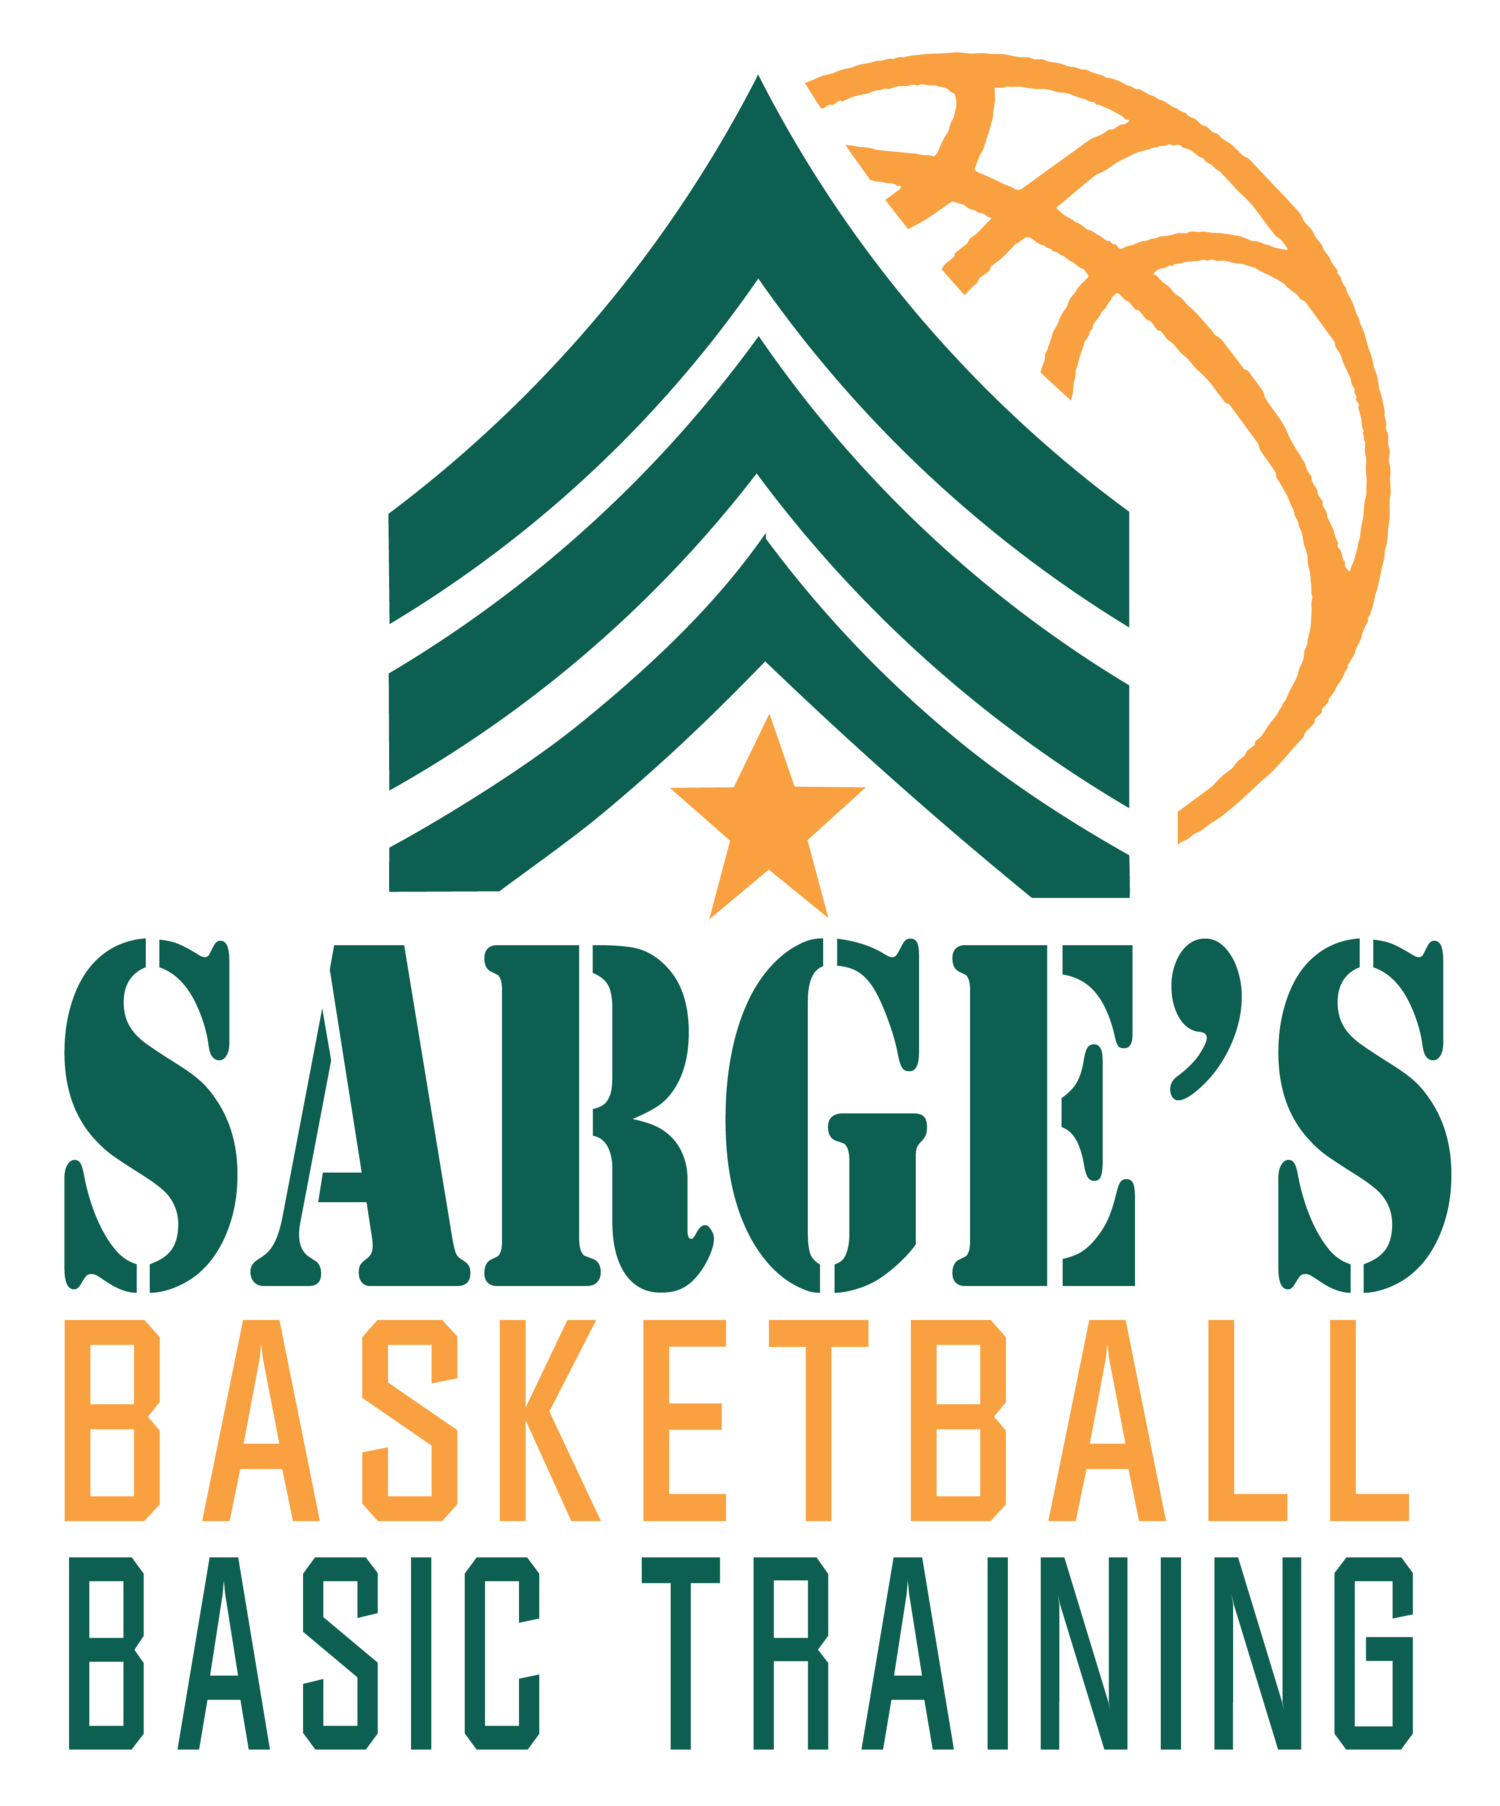 SARGE'S BASKETBALL BASIC TRAINING